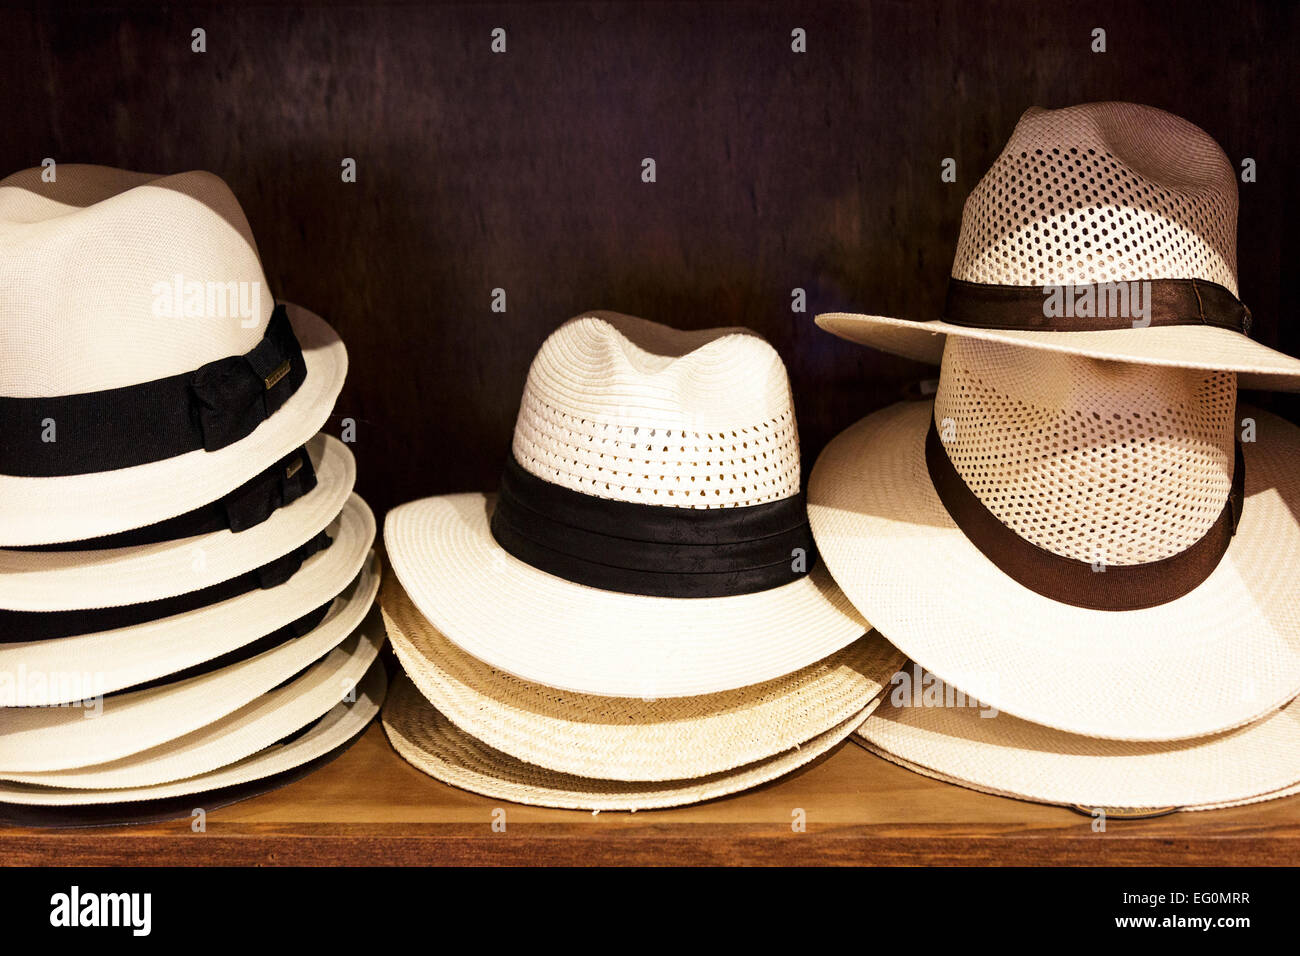 Selection of gent s straw summer hats for sale Stock Photo  78692315 ... 62b7169b22b